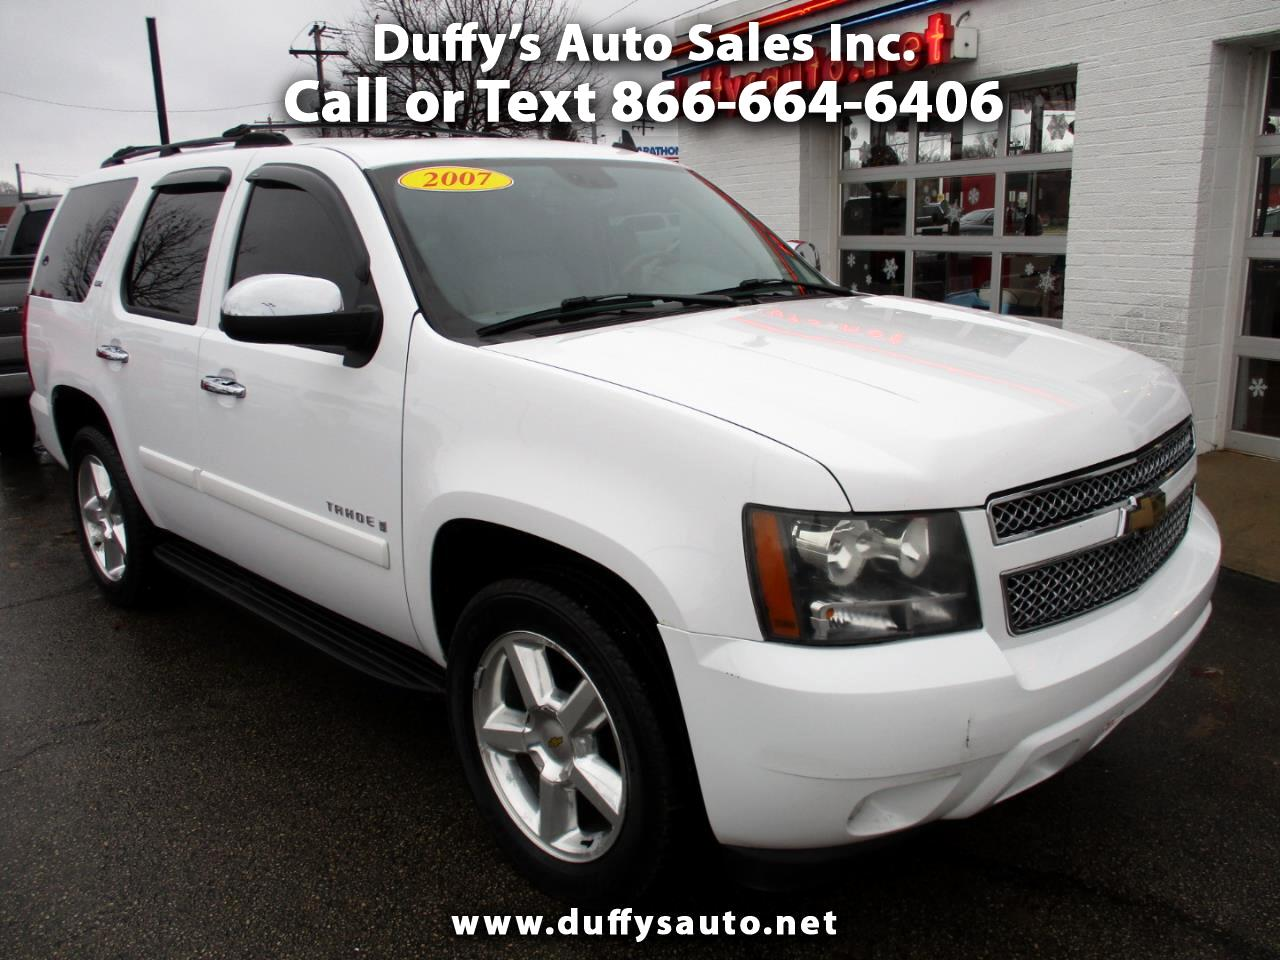 Used Cars For Sale Ottawa Il 61350 Duffys Auto Sales Inc 03 F250 V10 Fuel Filter 2007 Chevrolet Tahoe 4wd 4dr 1500 Ltz